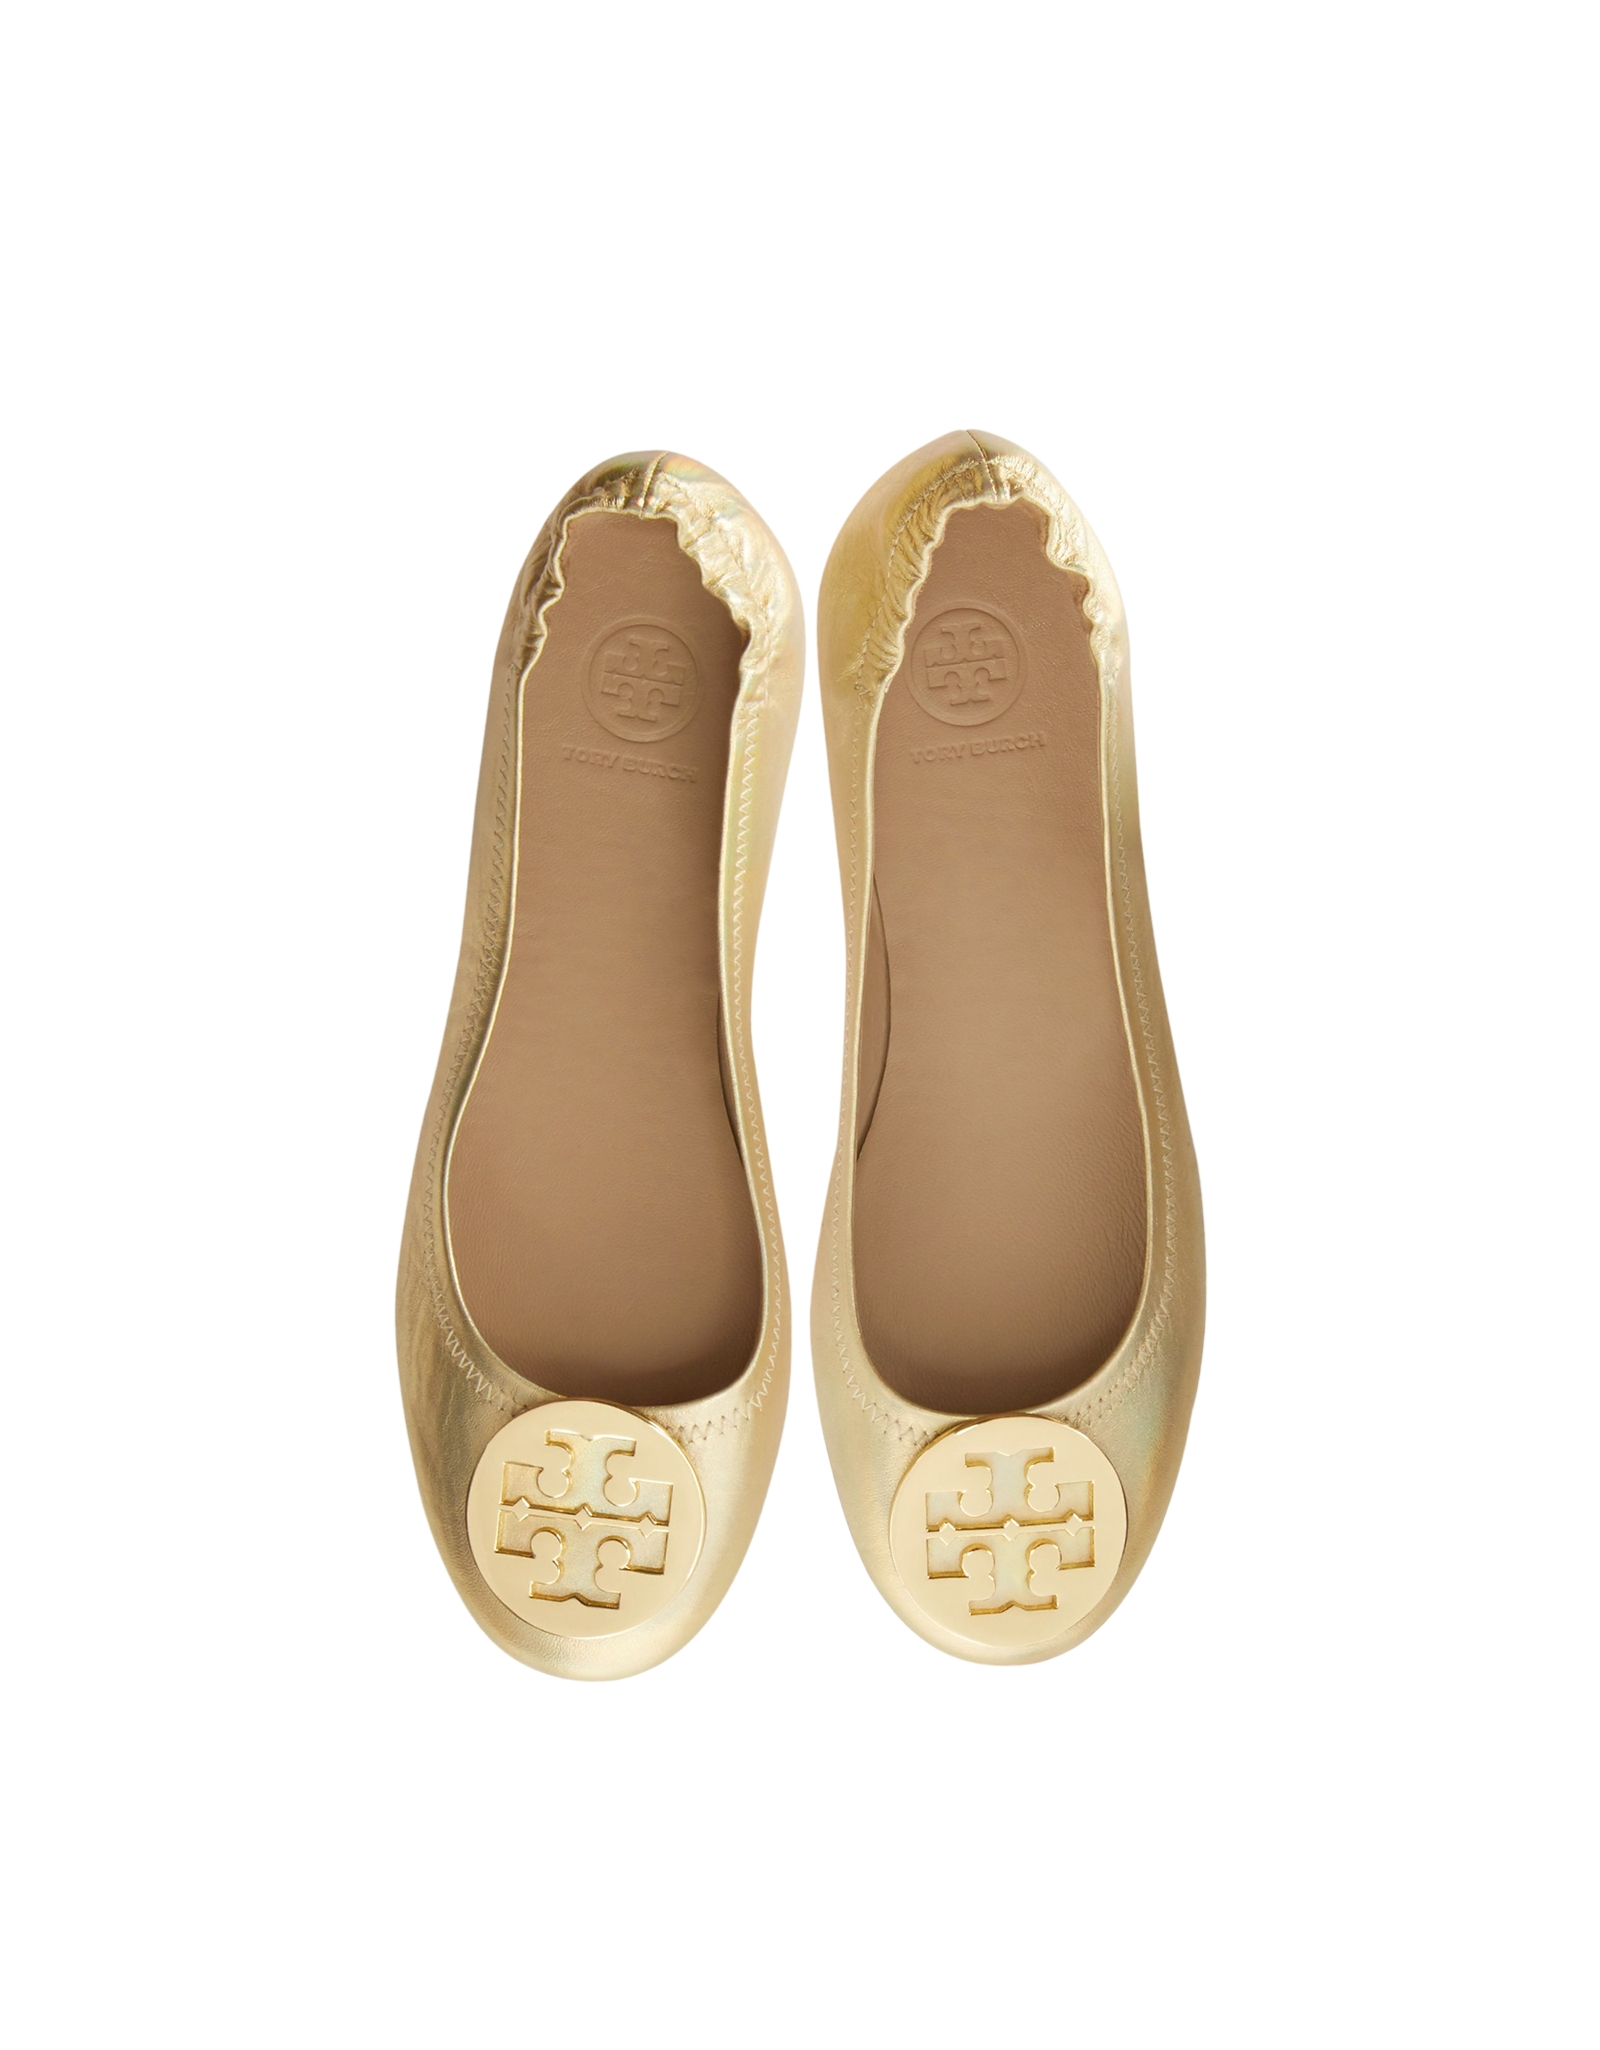 ed92e0b9d Lyst - Tory Burch Minnie Leather Travel Ballet Flats in Natural